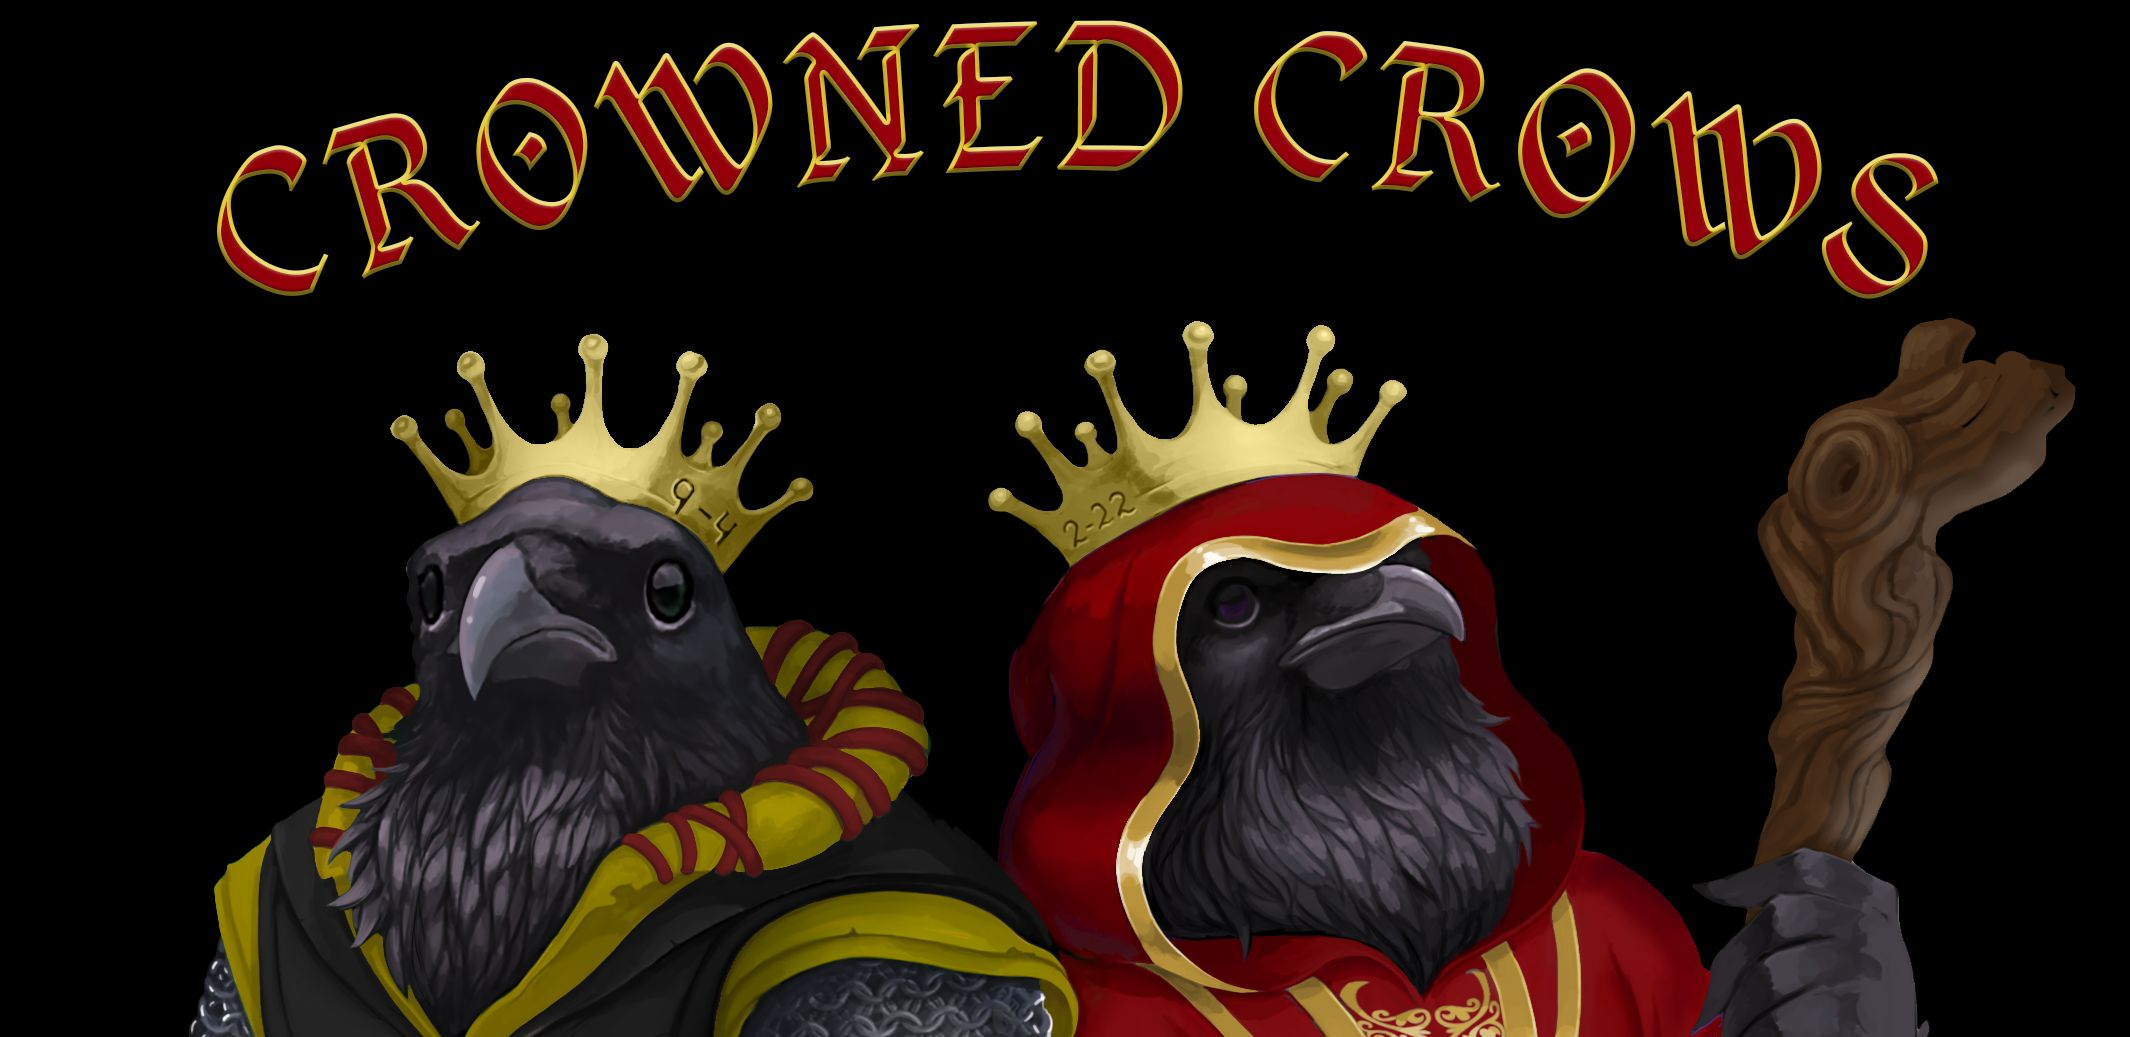 Crowned Crows